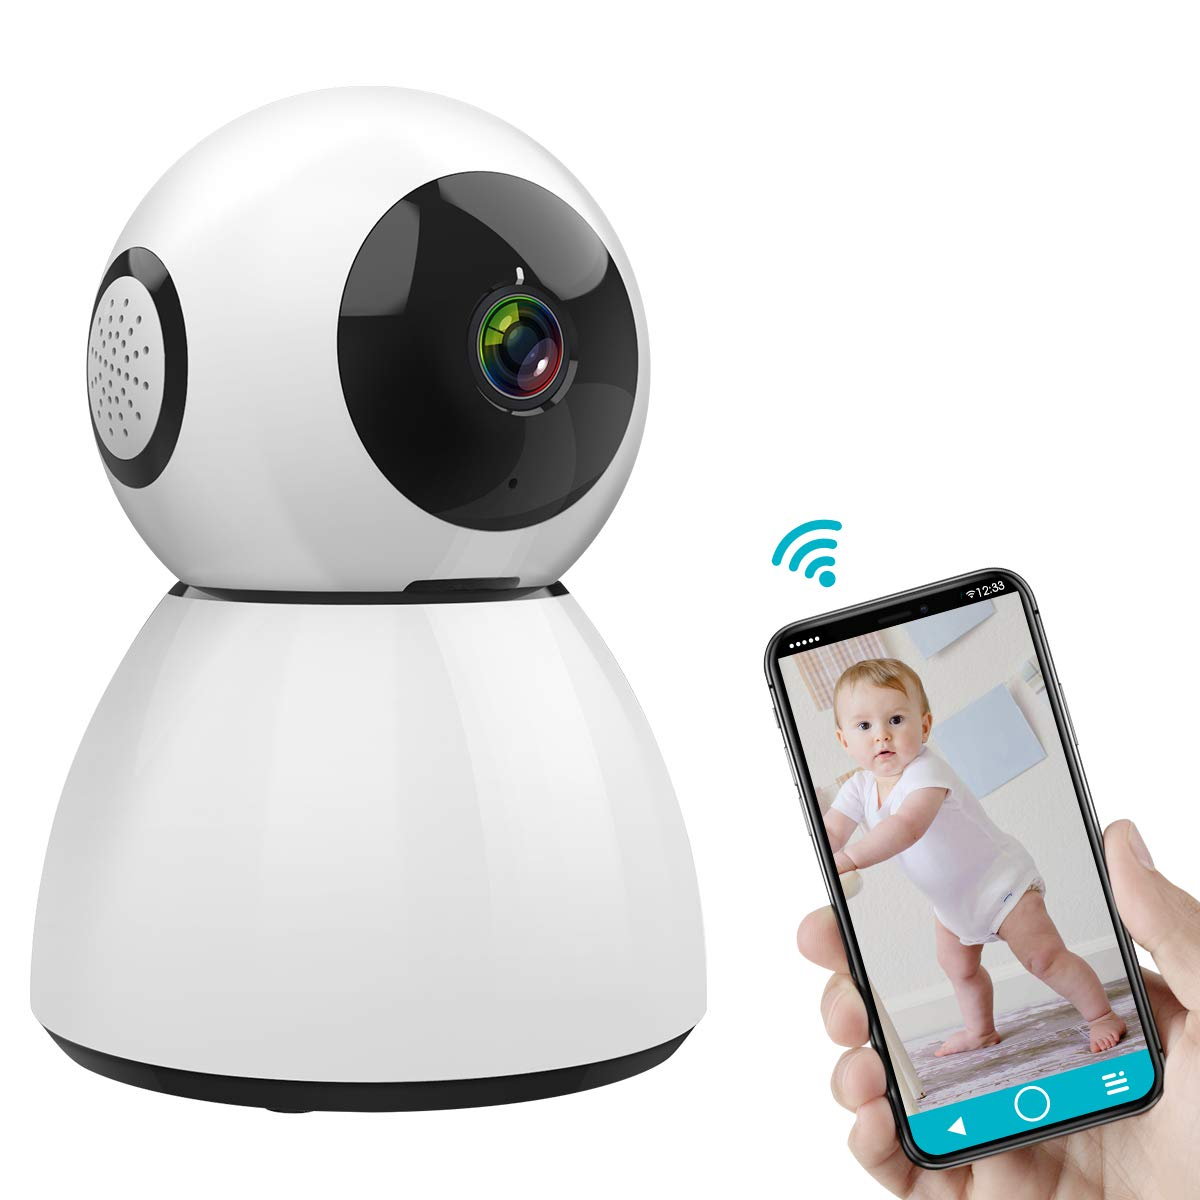 SAWAKE Caméra de Surveillance, 1080P HD Caméra de Sécurité, Caméra IP WiFi sans Fil, Audio Bidirectionnel, Storage Cloud, Vision Nocturne, Détection à Distance de Mouvements product image